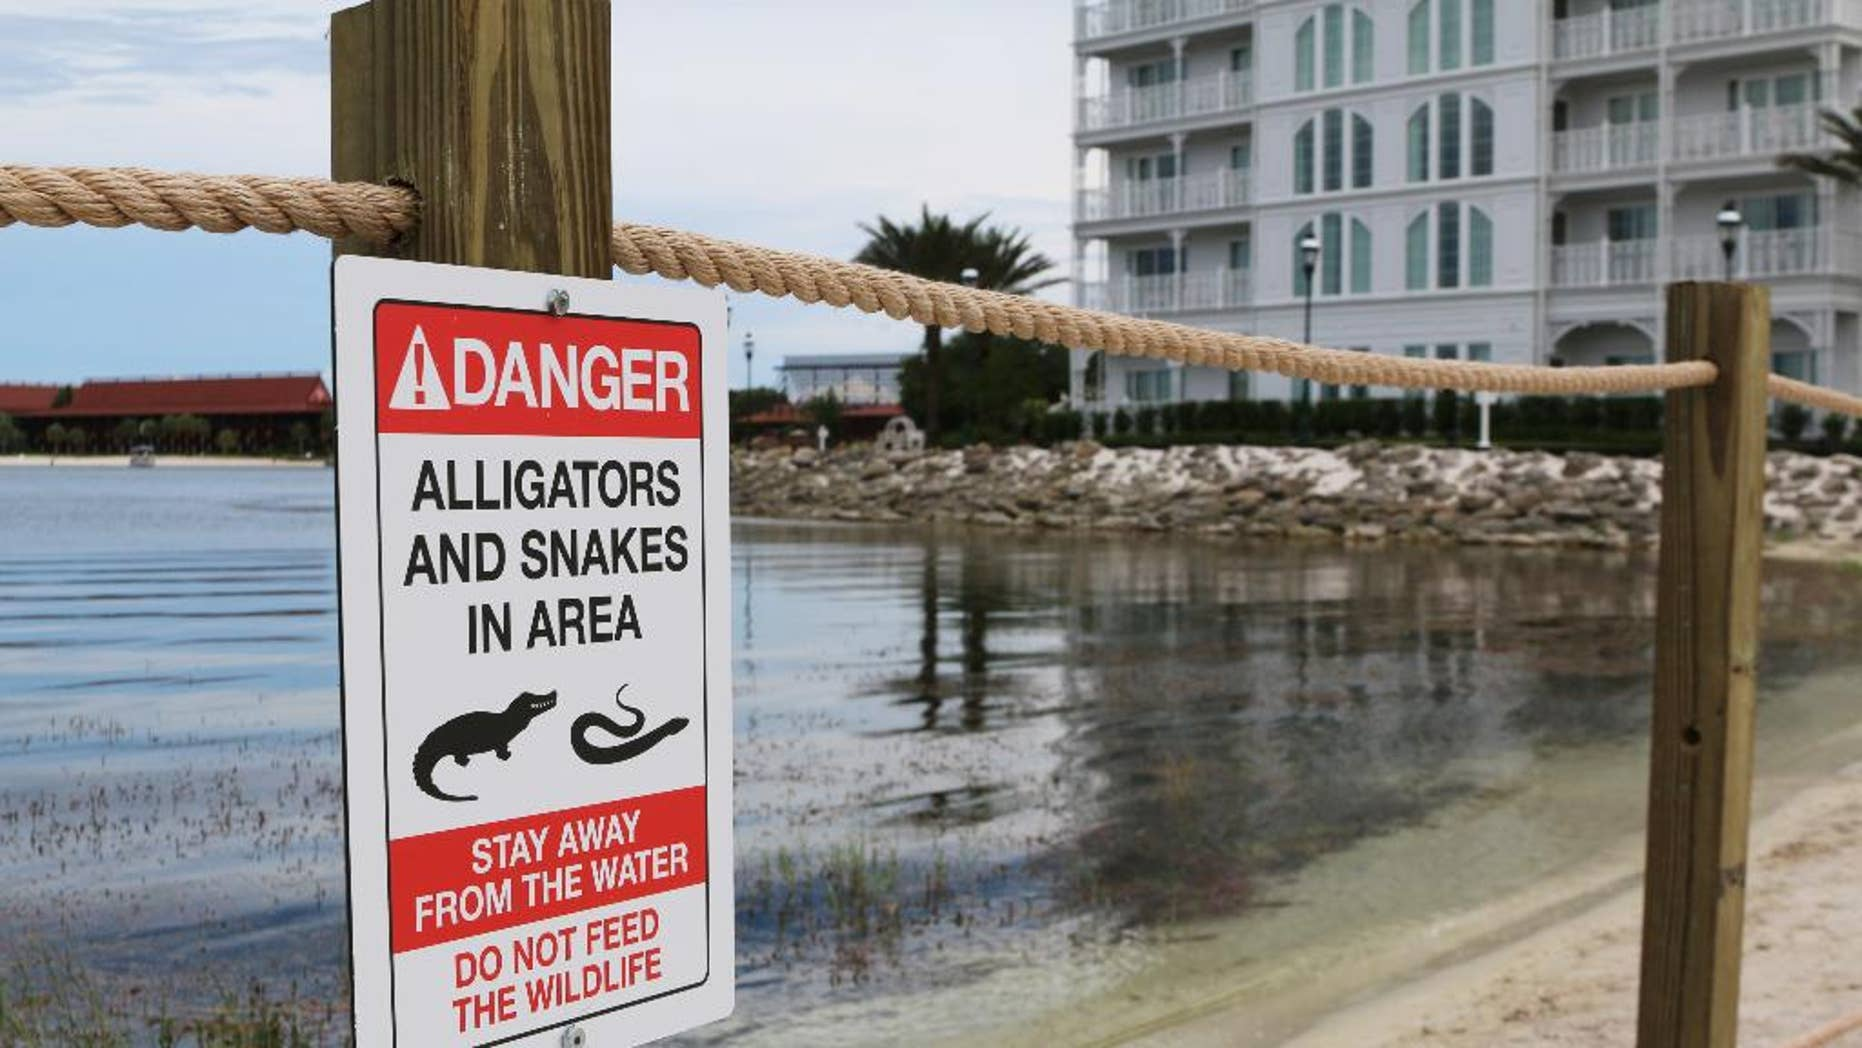 FILE - In this Friday, June, 17, 2016 file photo released by Walt Disney World Resort, a new sign is seen posted on a beach outside a hotel at a Walt Disney World resort in Lake Buena Vista, Fla., after a 2-year-old Nebraska boy killed by an alligator at Disney World.  Matt Graves, the father of the toddler killed by an alligator at Disney on June 14, told rescue officials two alligators were involved in the attack, according to emails from the Reedy Creek Fire Department.  (Walt Disney World Resort via AP, File)